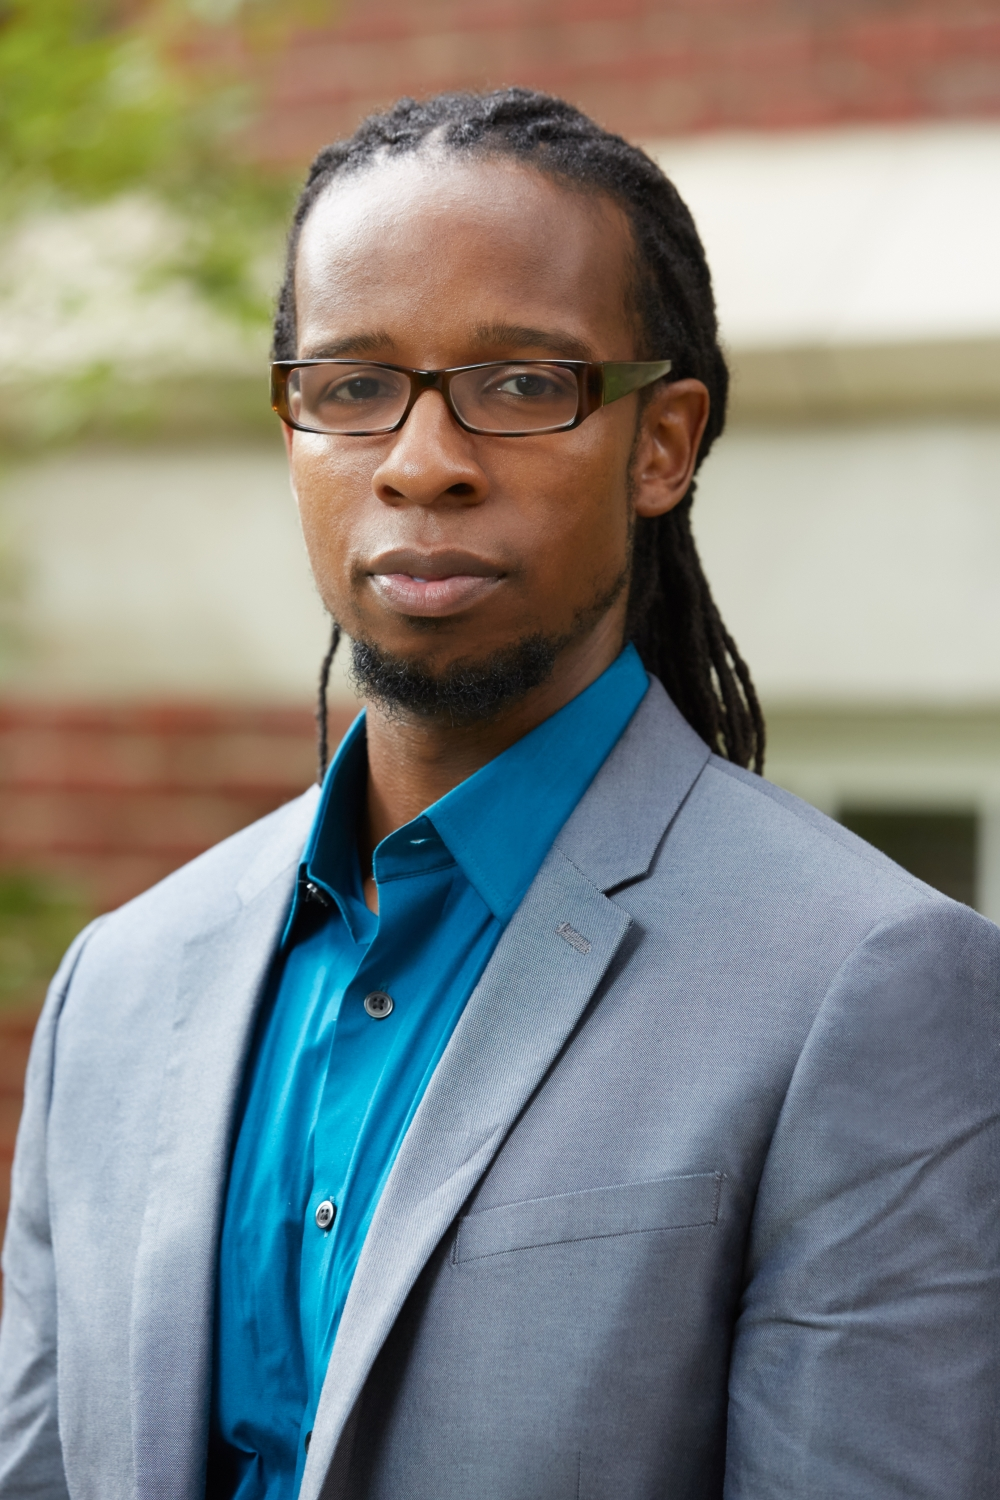 Anti-racist research and policy center coming to AU